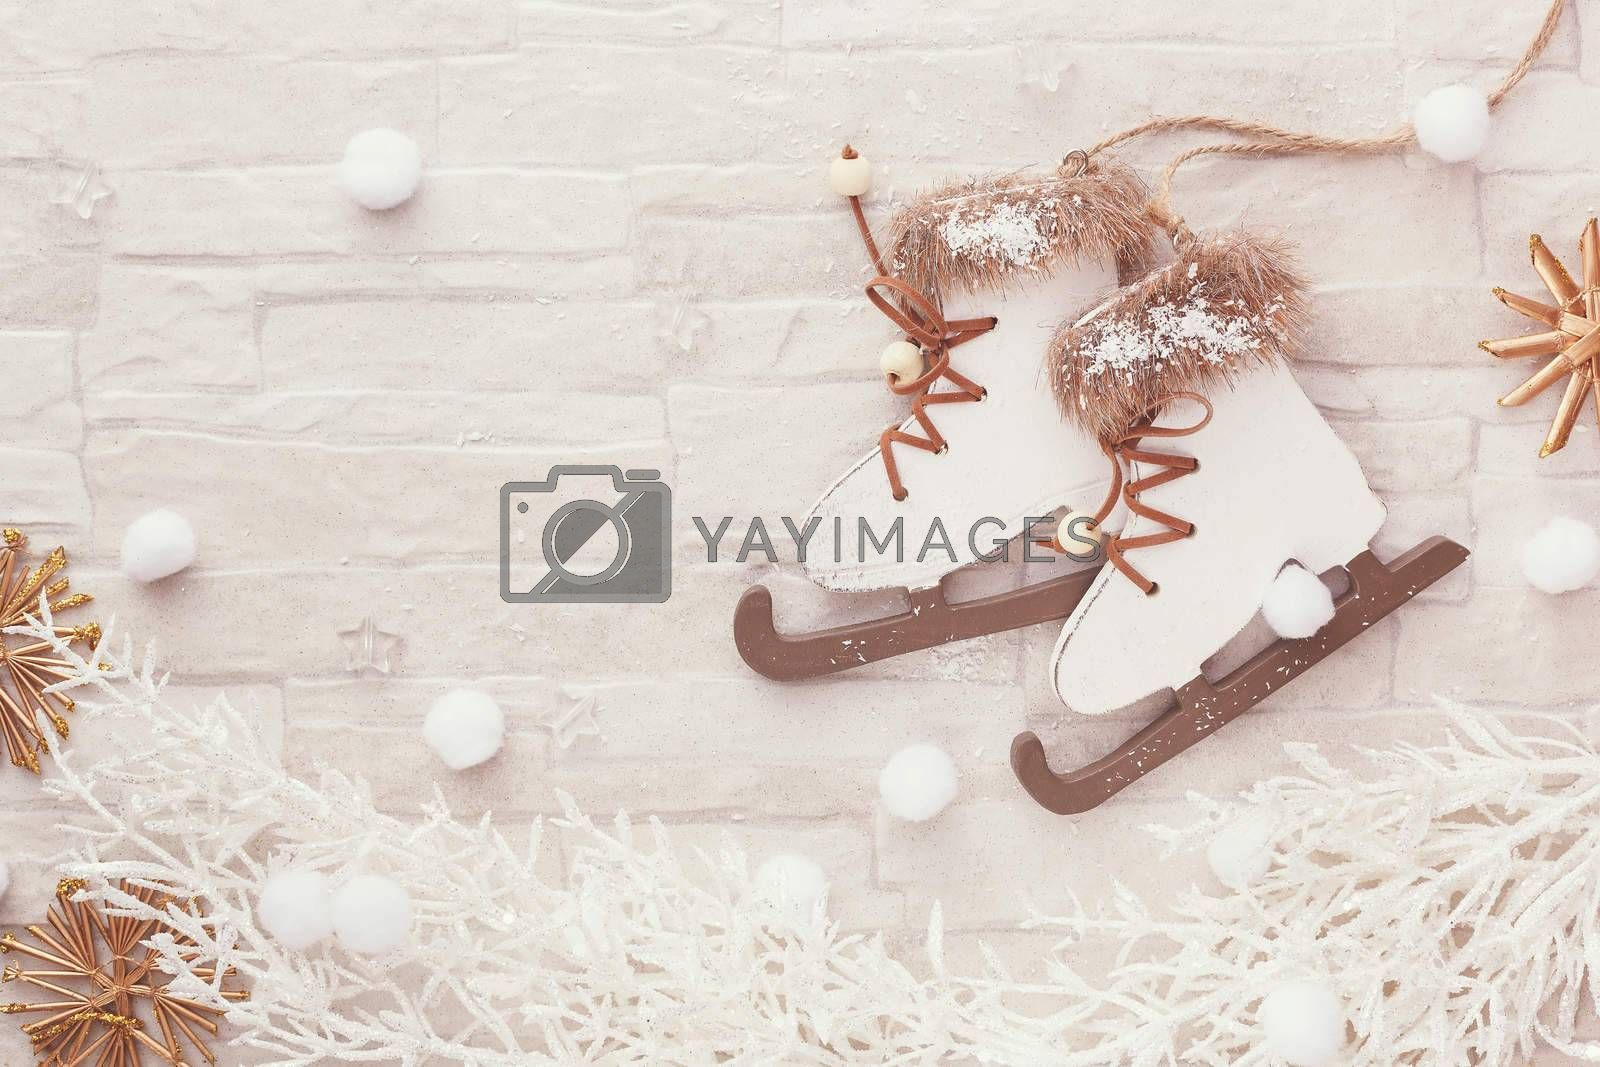 Figure skate Christmas ornament,  natural straw star ornaments and white pine twig on rustic background. Top view, blank space, vintage toned image